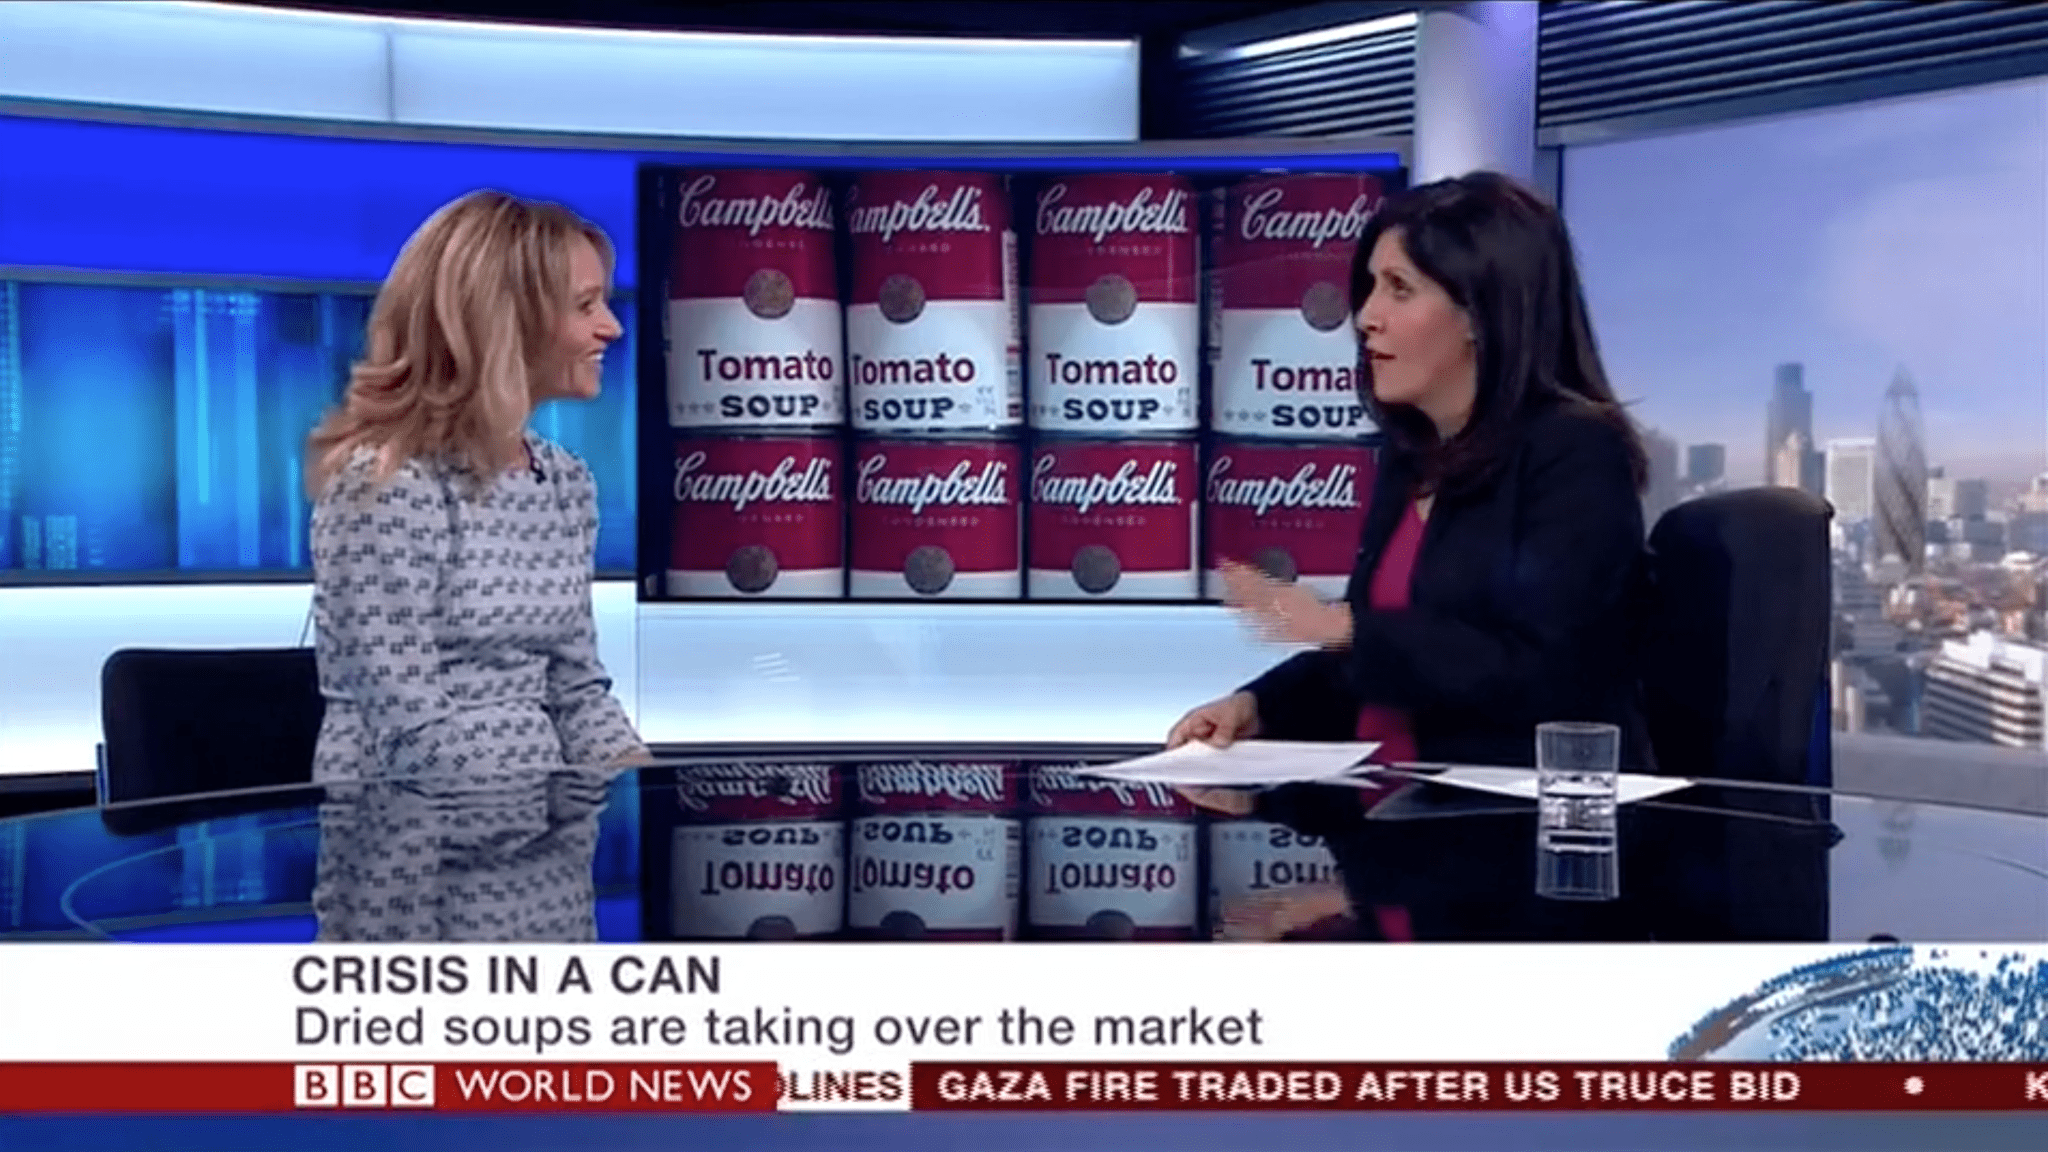 BBC- Crisis in a can